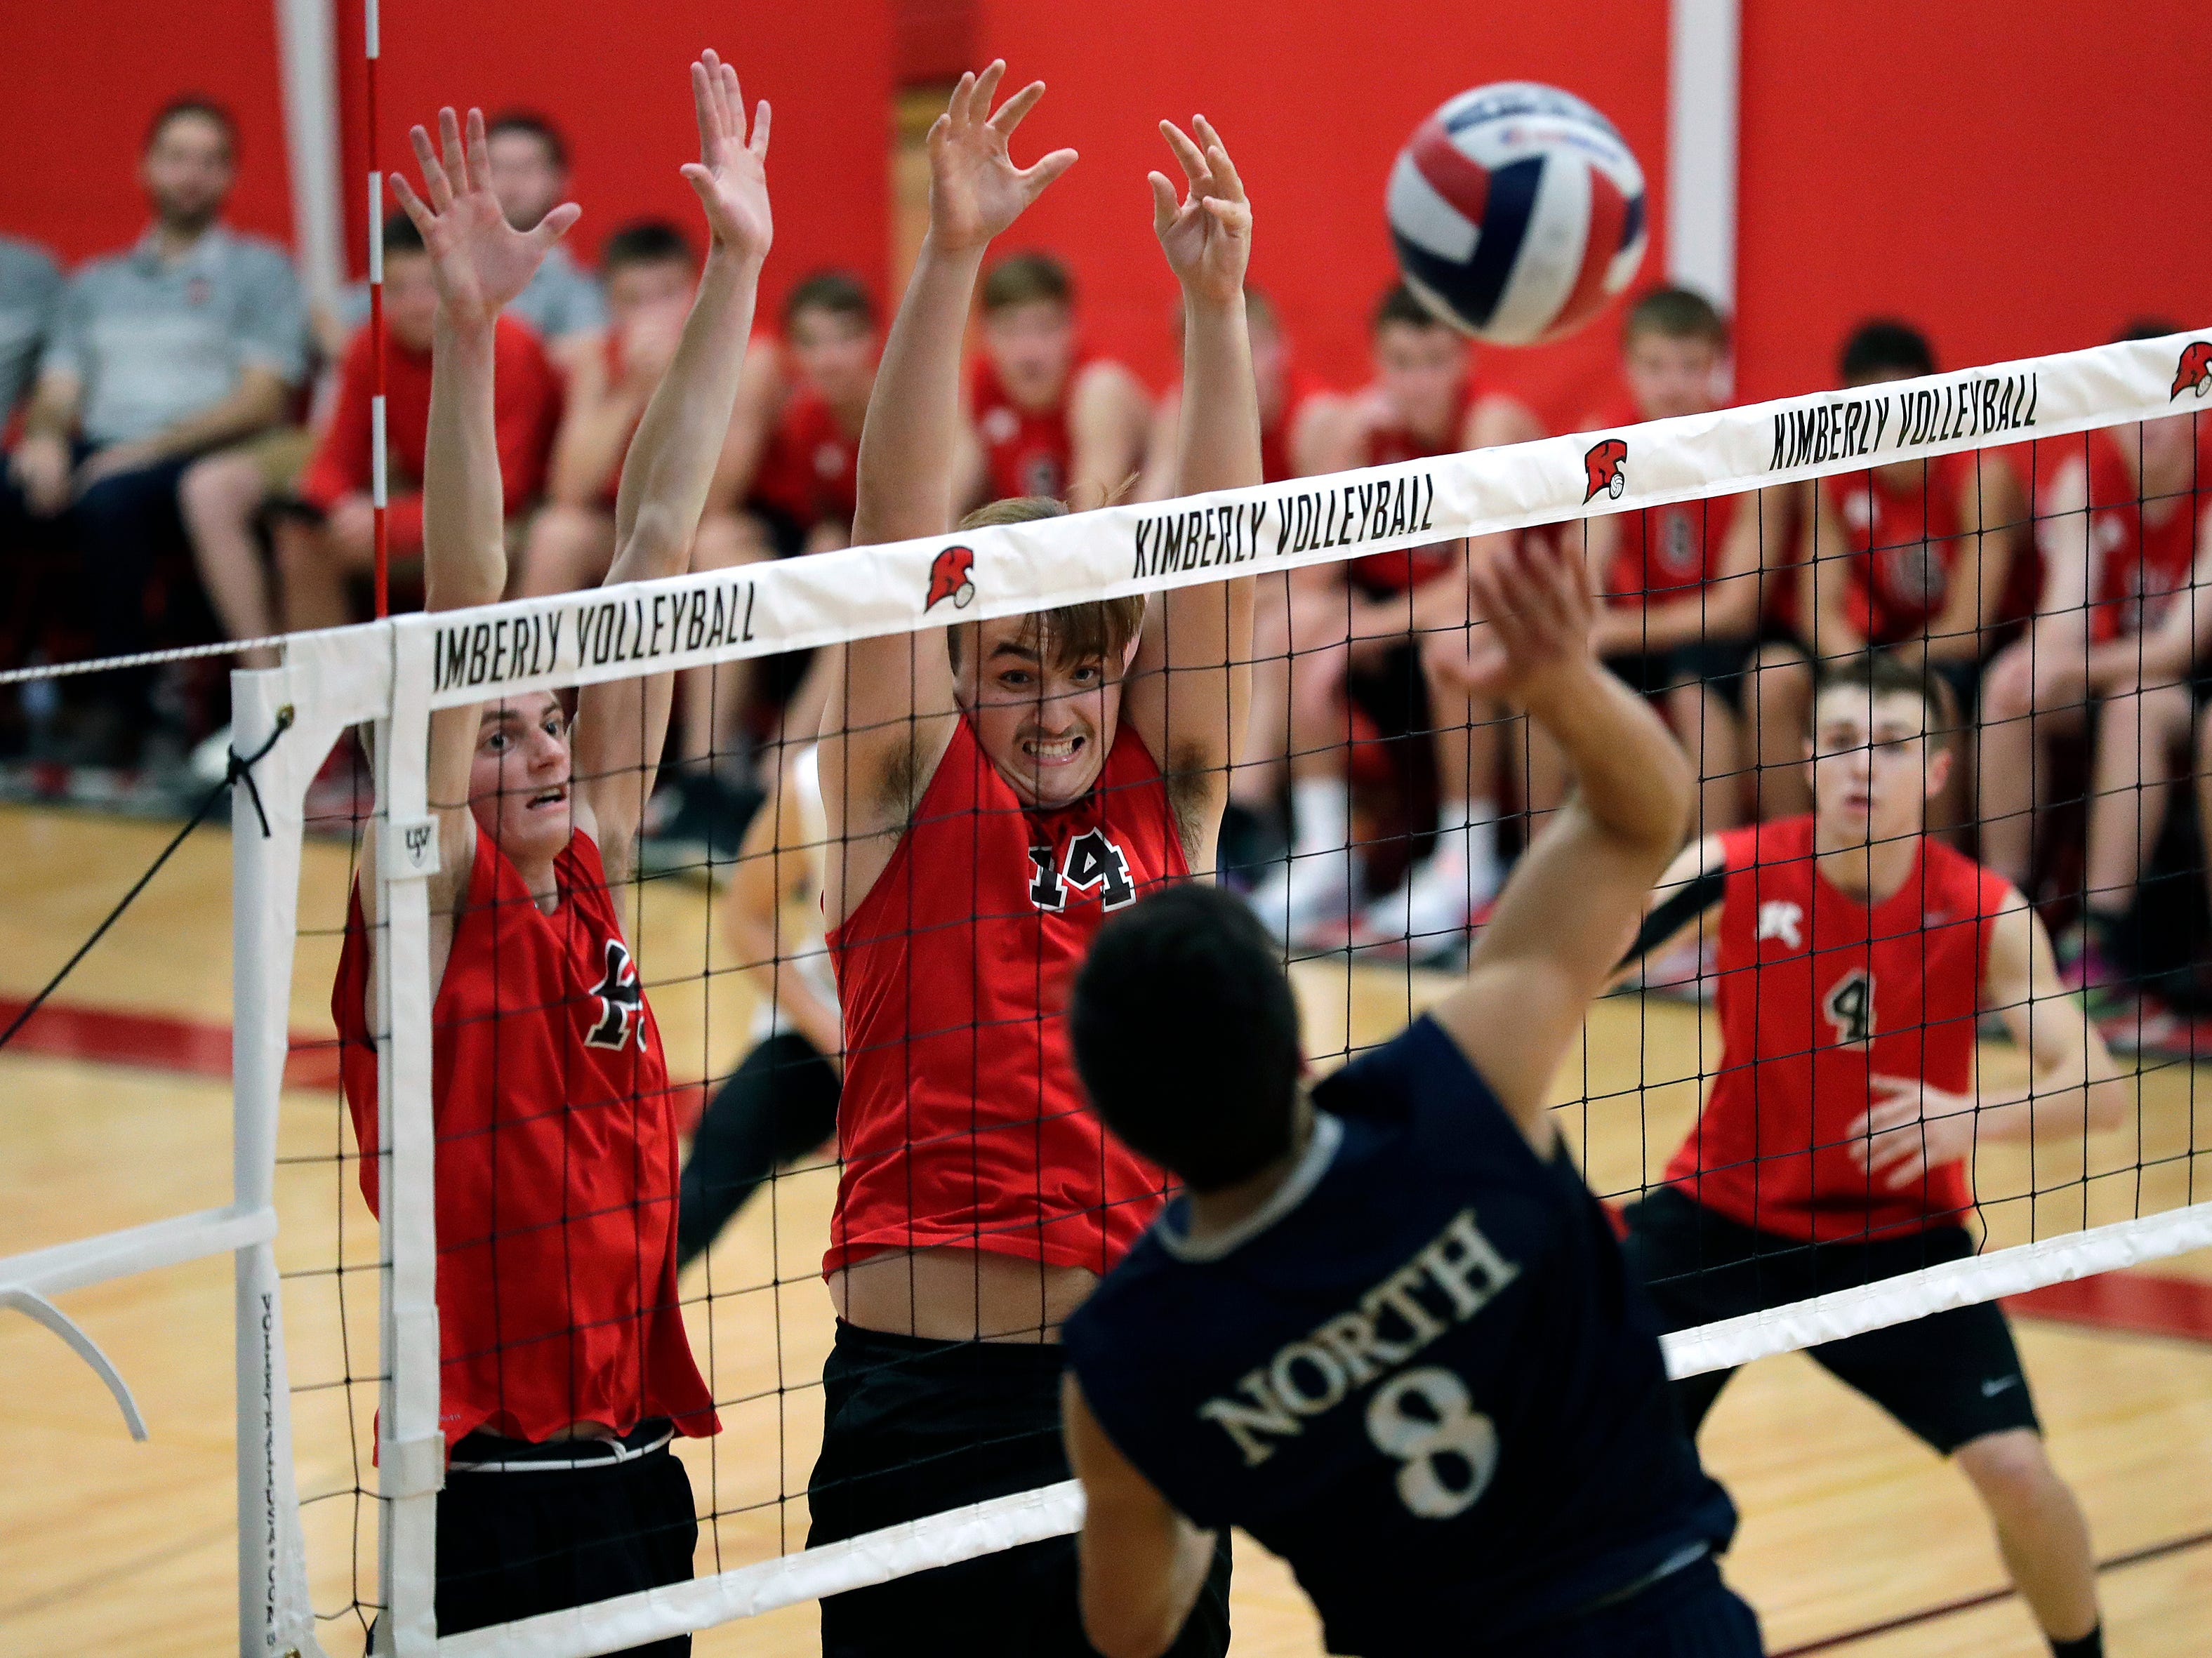 Kimberly High School's James Vanevenhoven (15) and Luke Chevalier (14) defend against Appleton North High School's Andrew Woodbury (8) during their boys volleyball match Tuesday, Oct. 9, 2018, in Kimberly, Wis. 